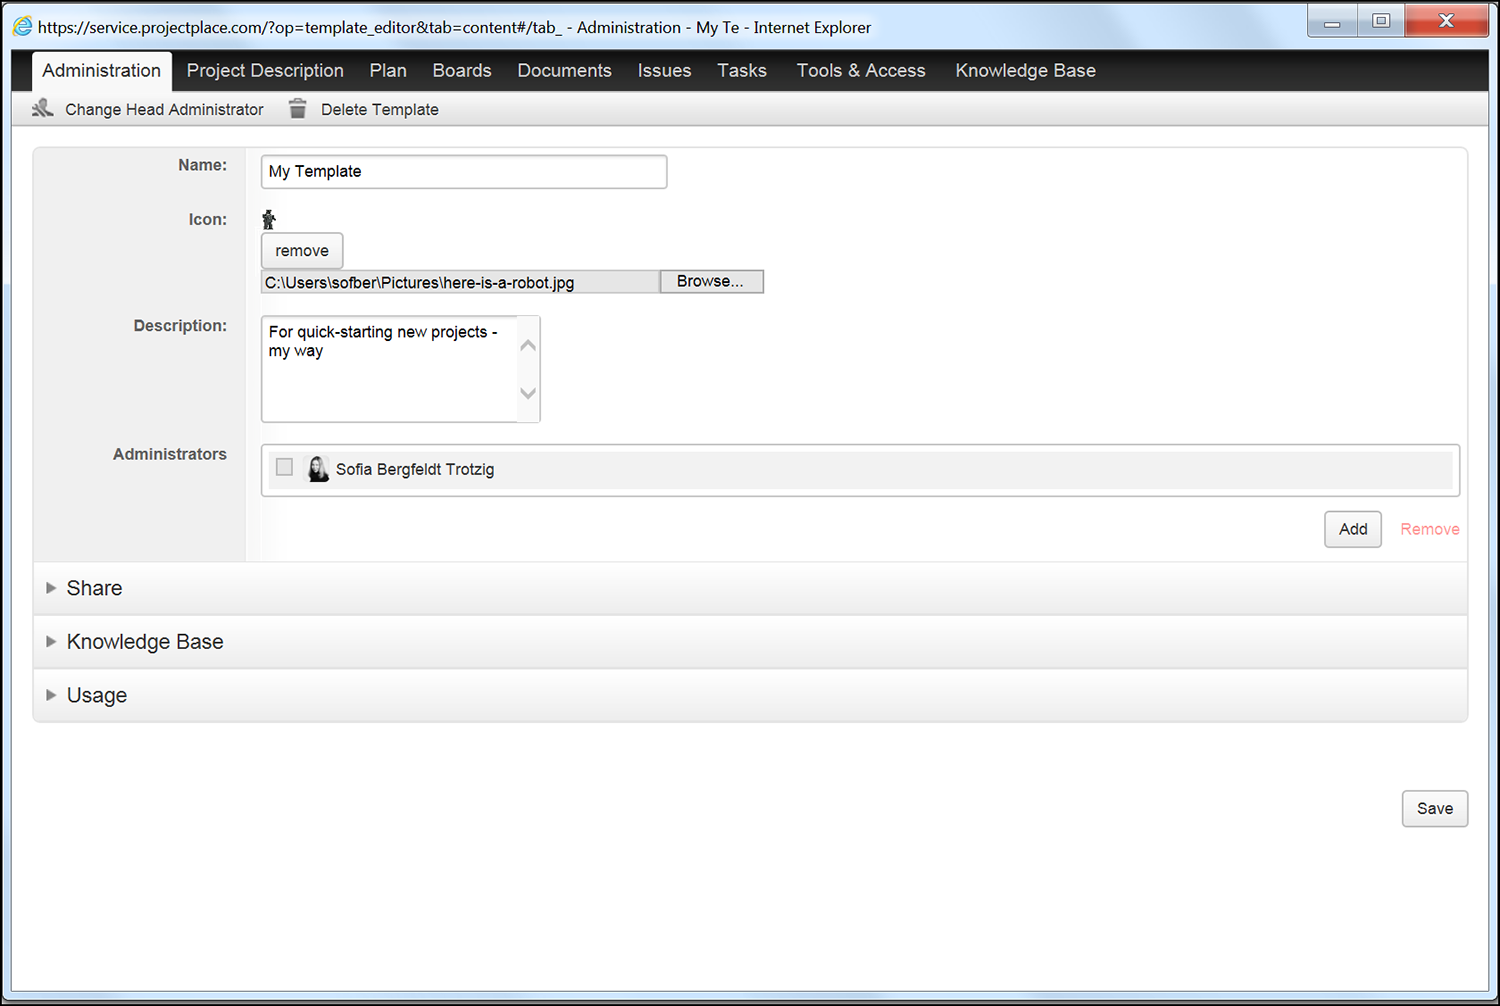 Project management templates in Projectplace